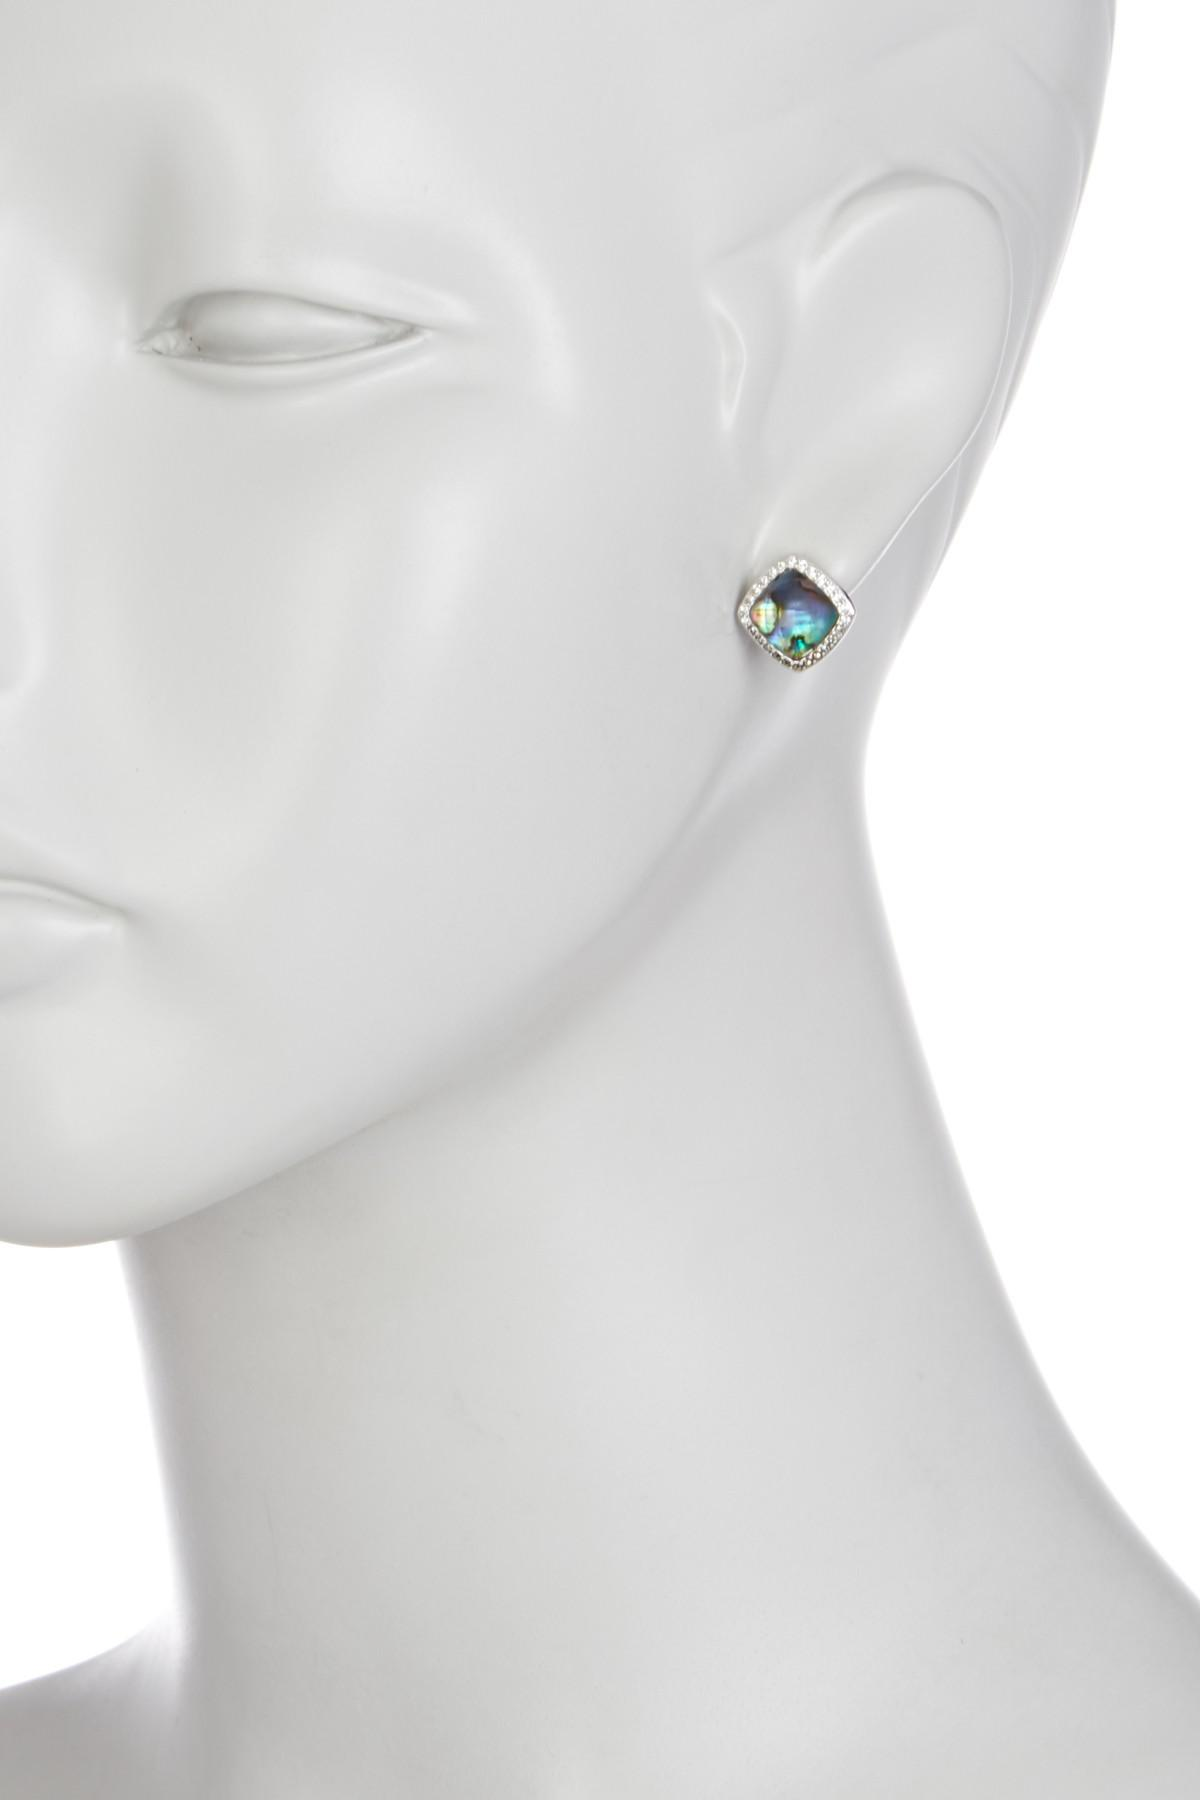 silver which jai artisan stone comes piece abalone oval ha and round in earrings square khun inlay se seashell cute inlaid designed stud aeravida details this heart beautiful trendy accents products